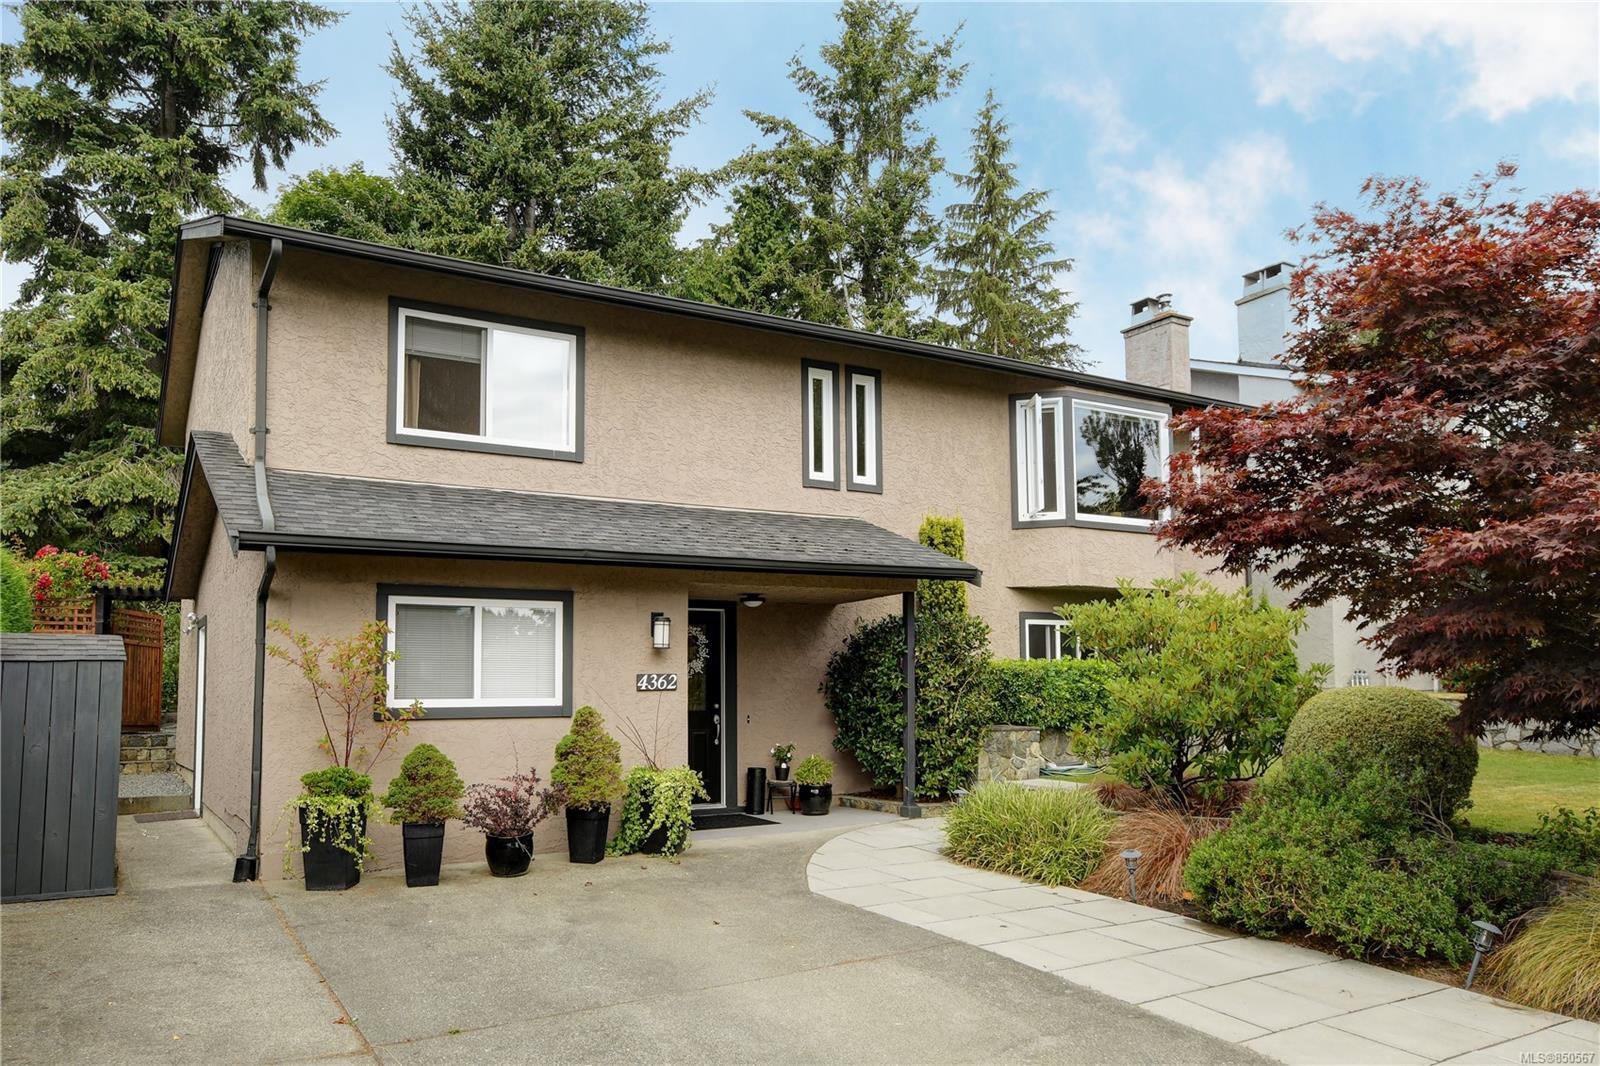 Main Photo: 4362 Elnido Cres in : SE Mt Doug Single Family Detached for sale (Saanich East)  : MLS®# 850567